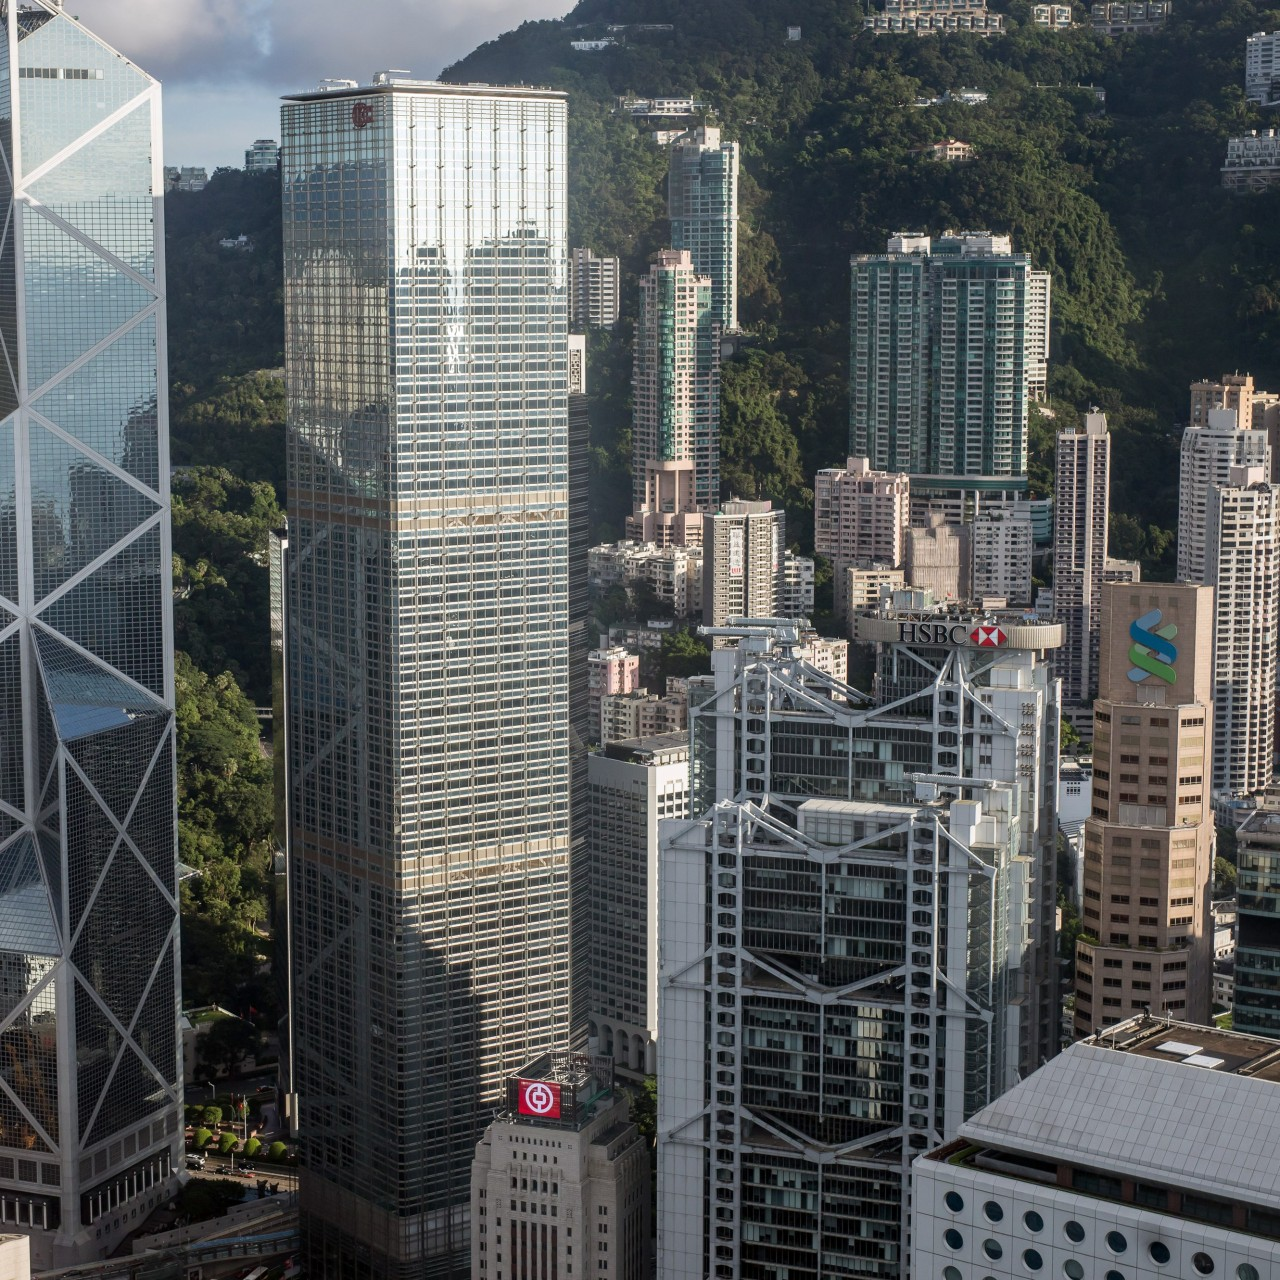 Hong Kong Monetary Authority expects to uncover more cases